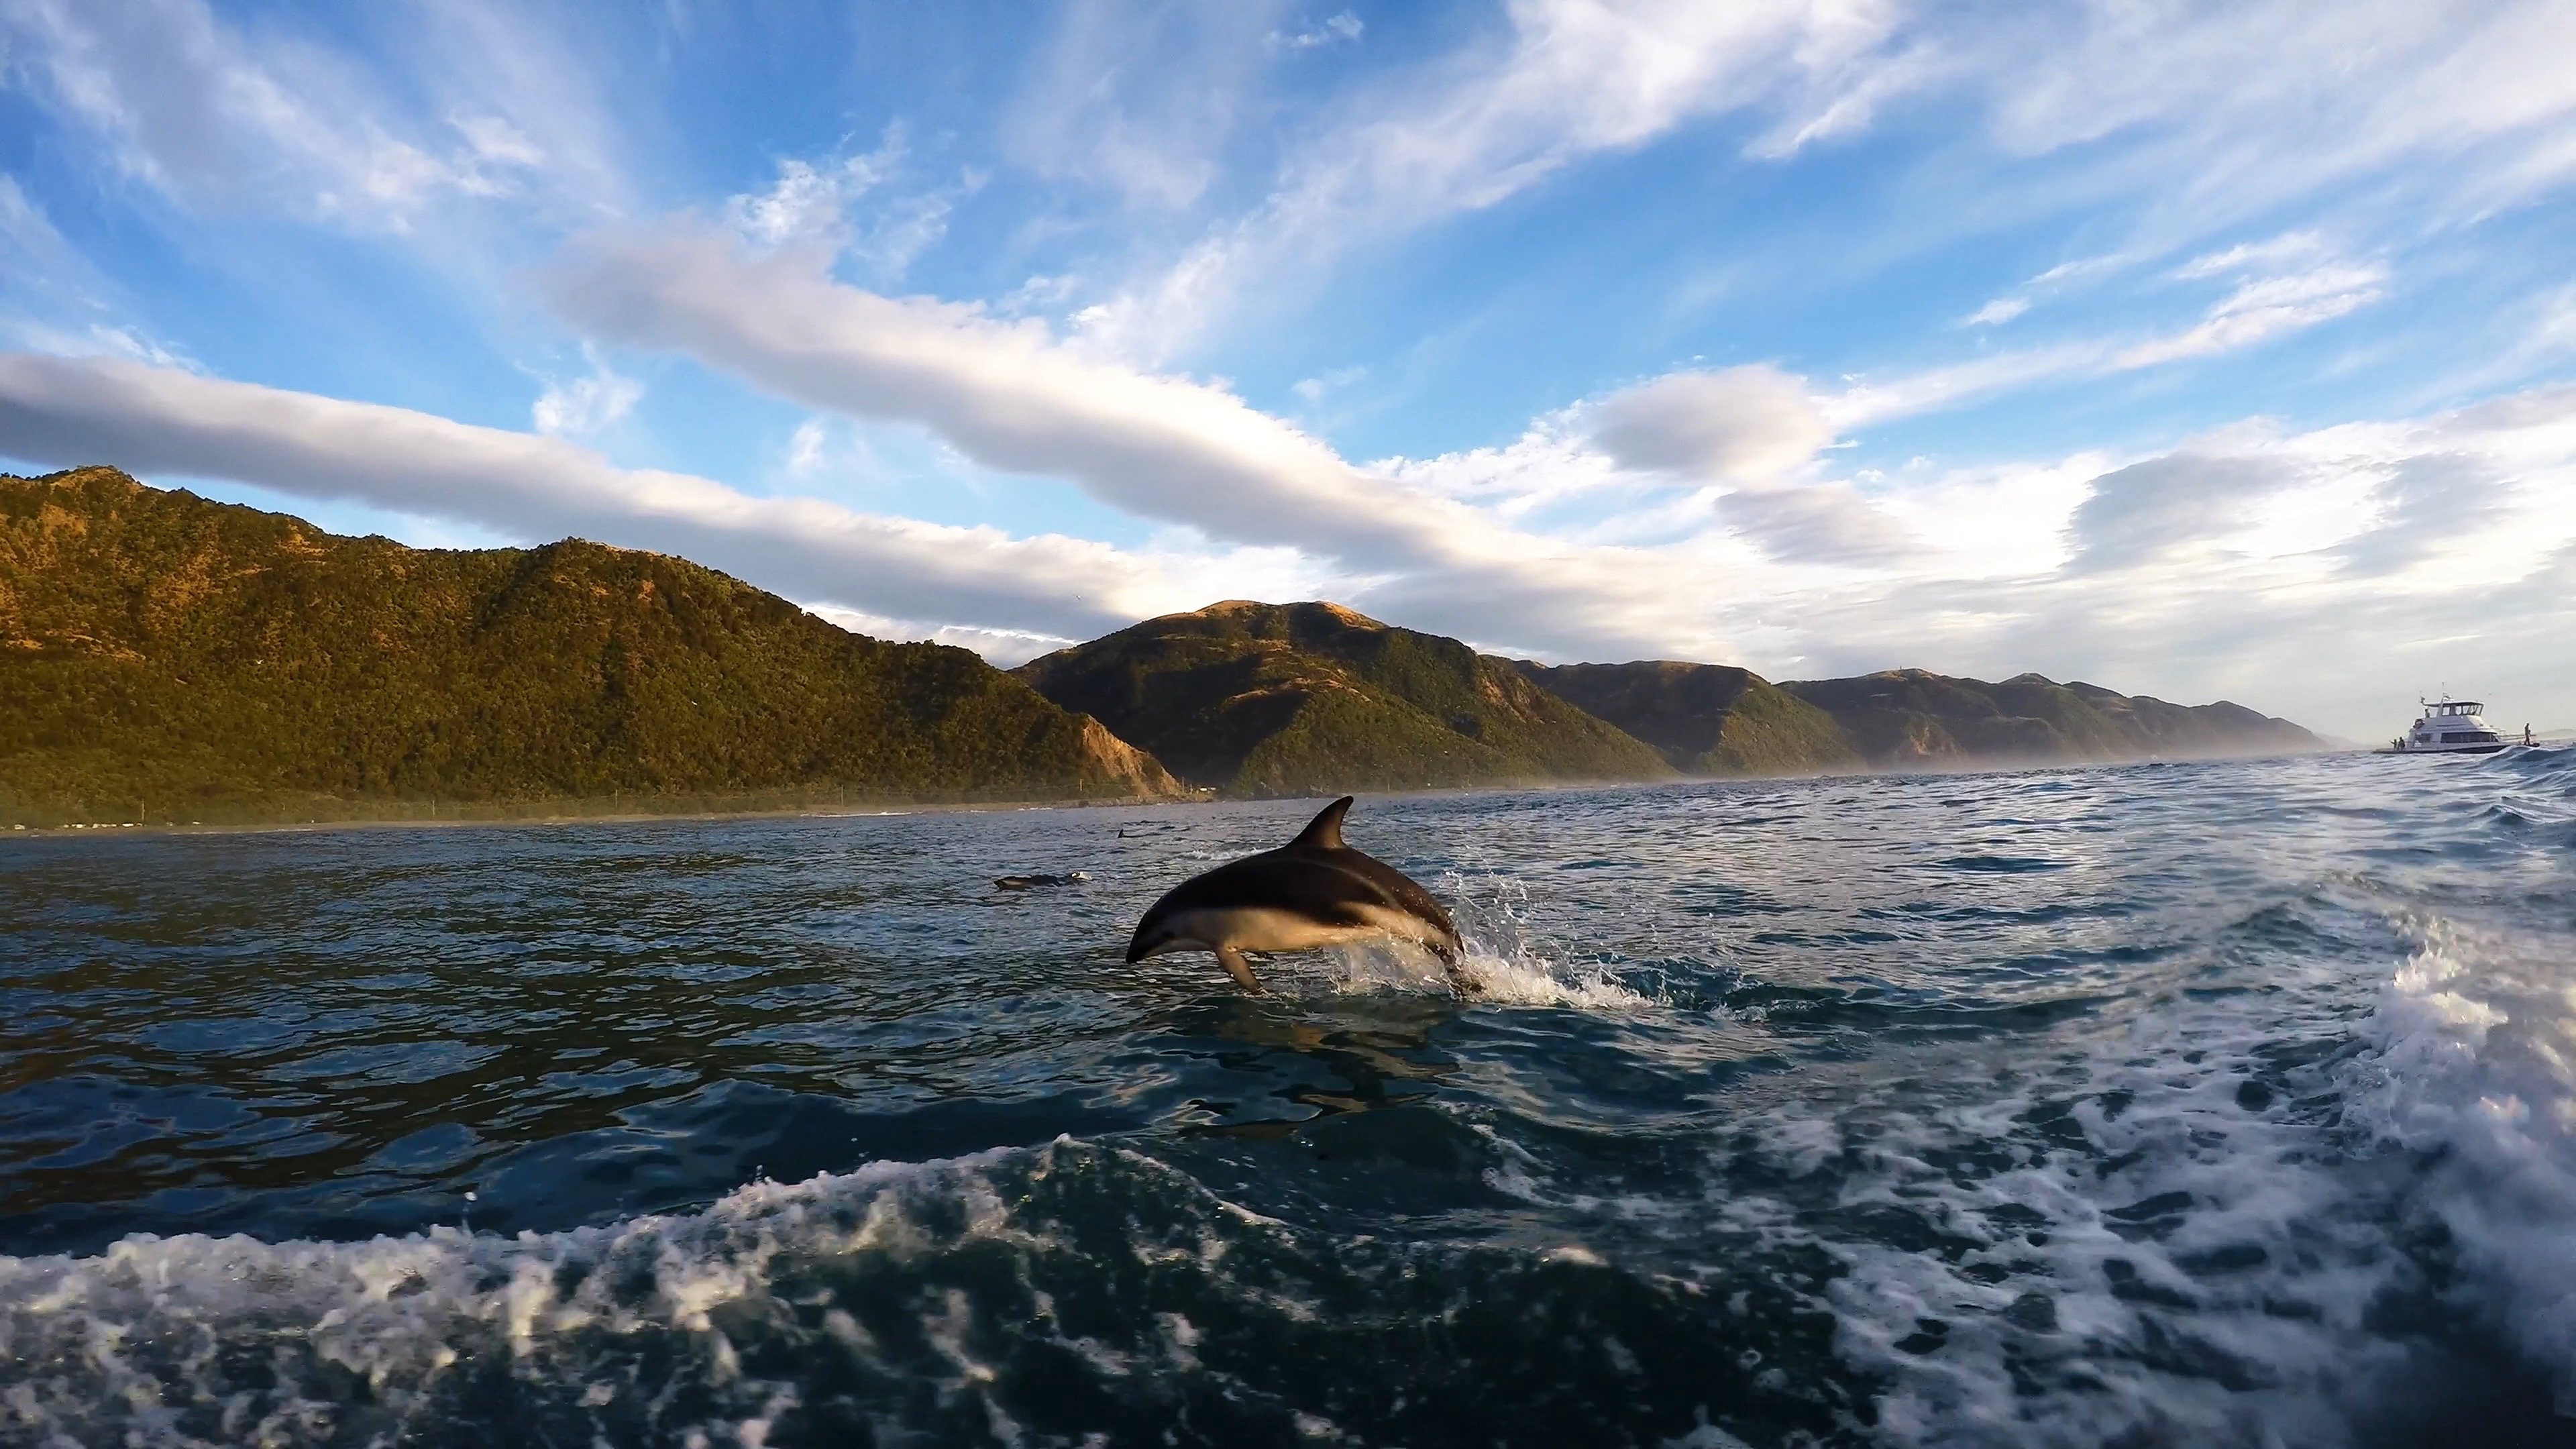 Swimming with wild dolphins in Kaikoura